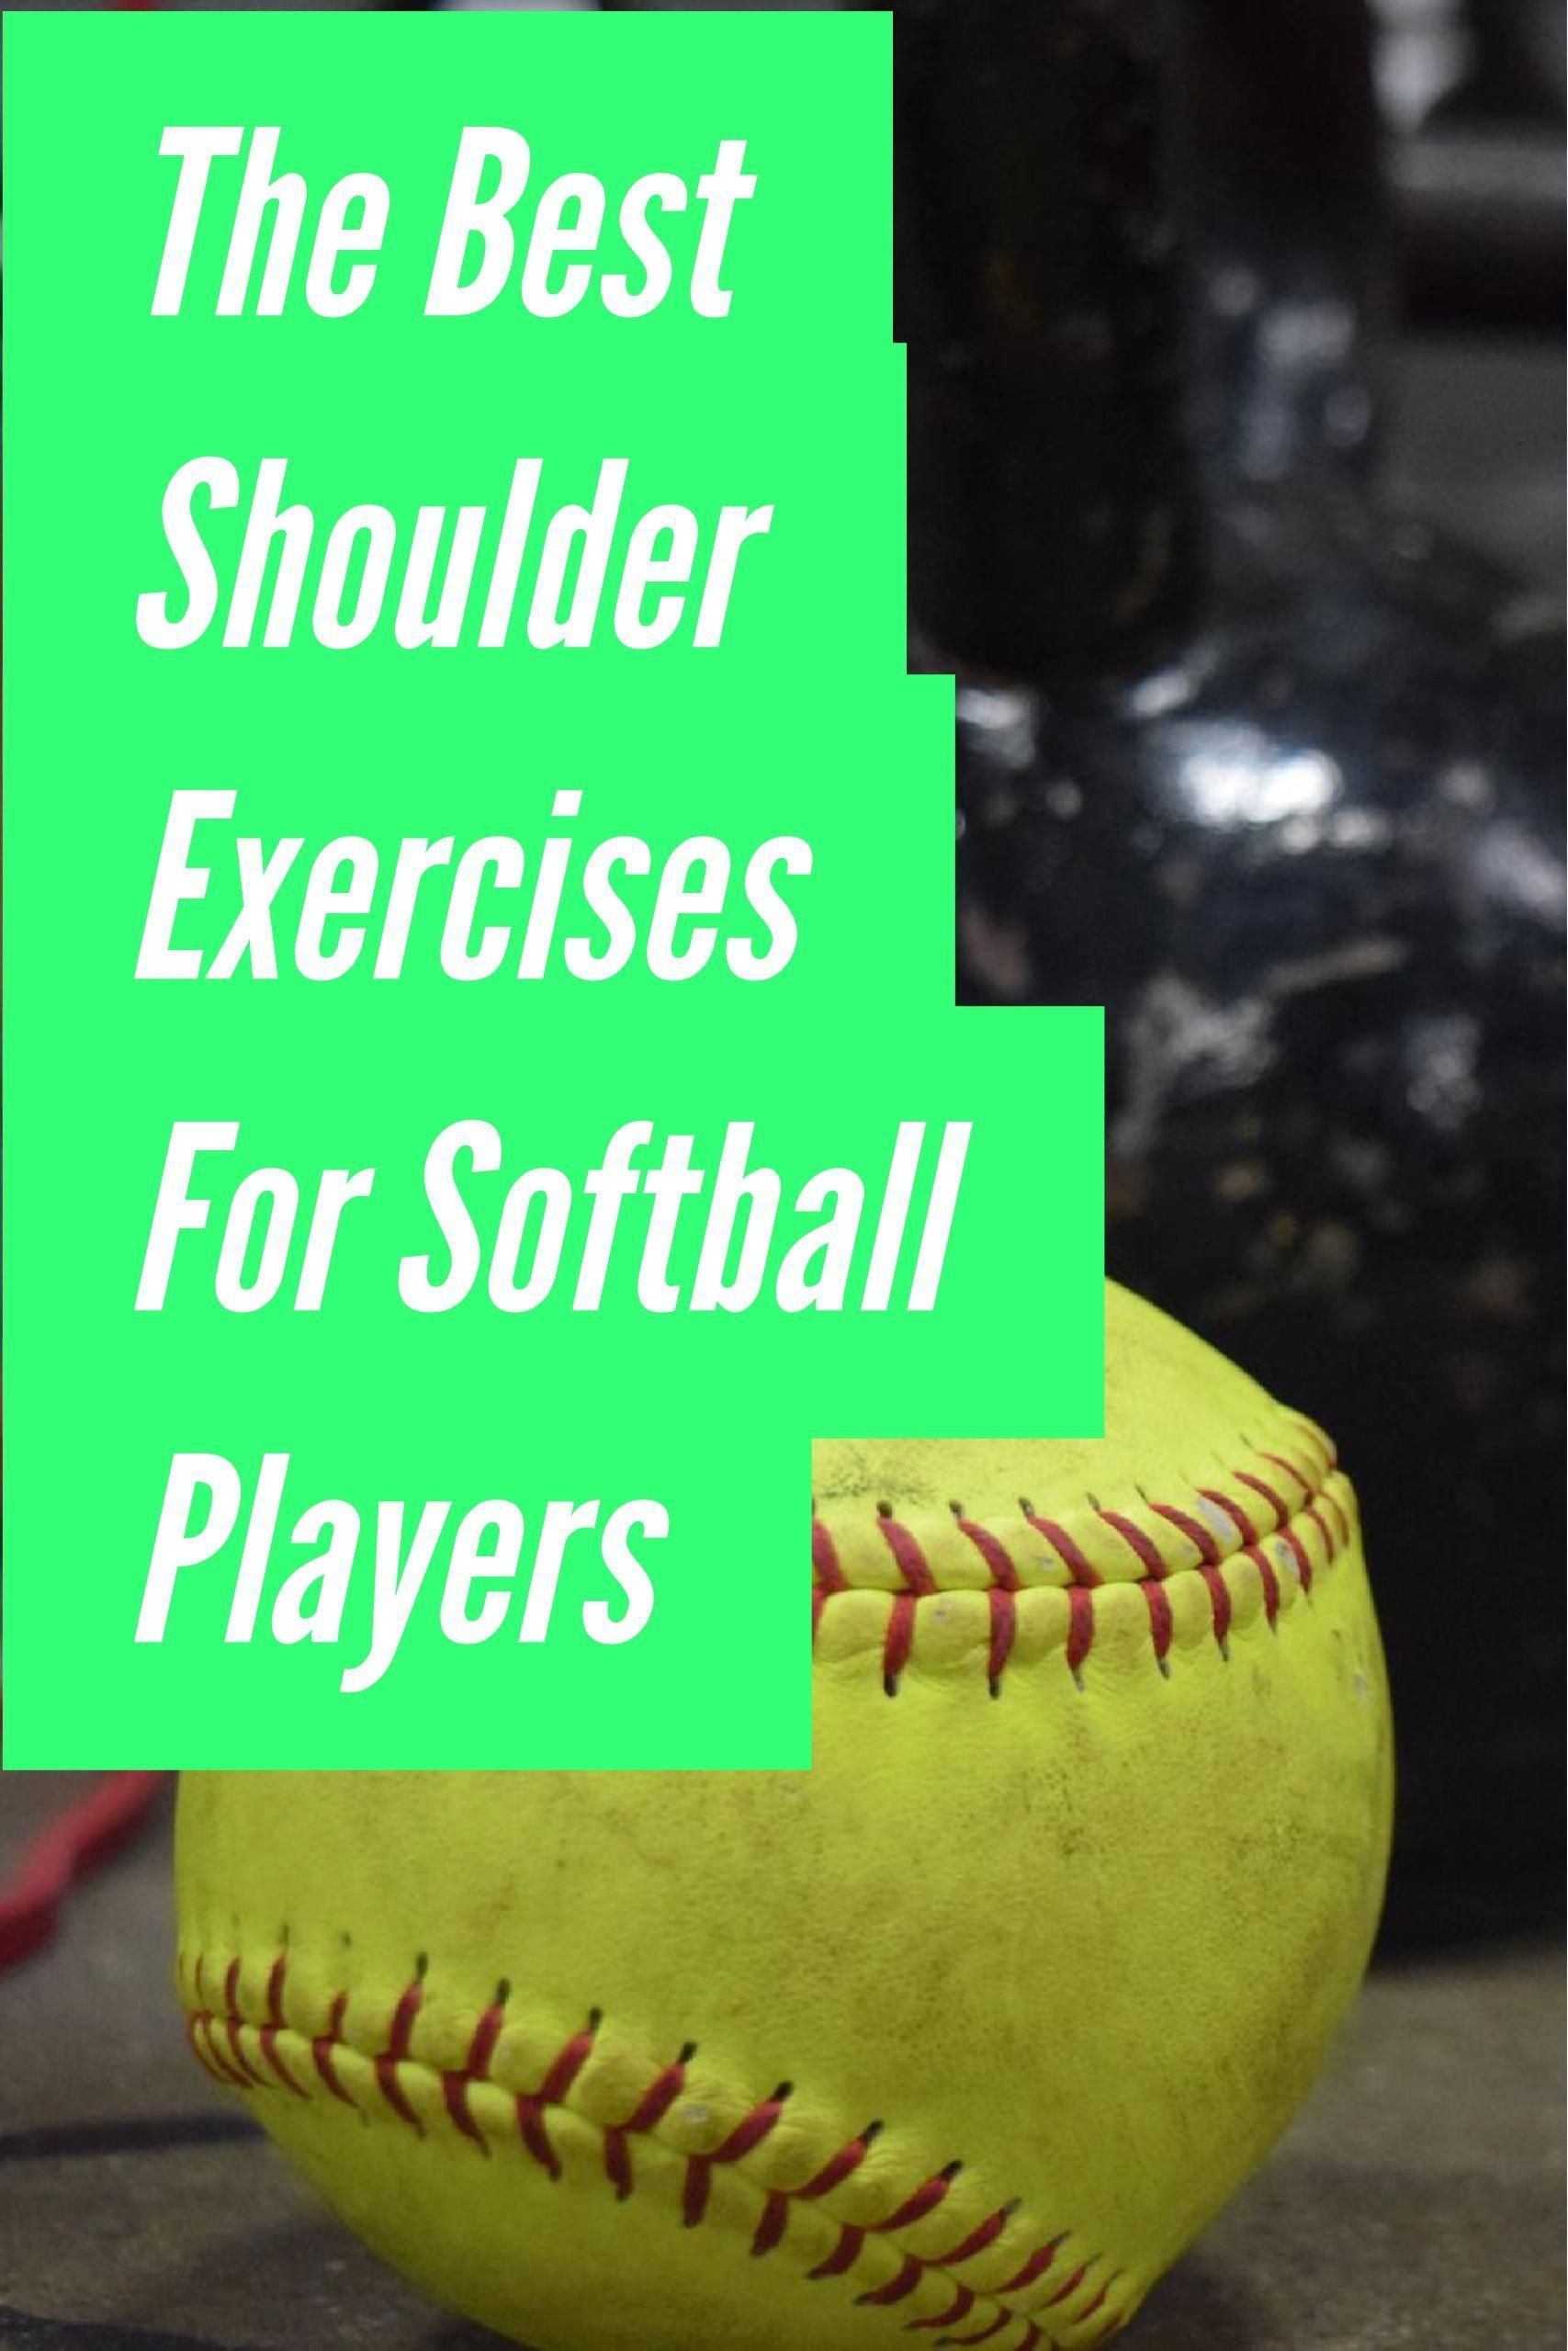 Colleges That Offer Basketball Scholarships Basketballvideogames2018 Softball Players Best Shoulder Workout